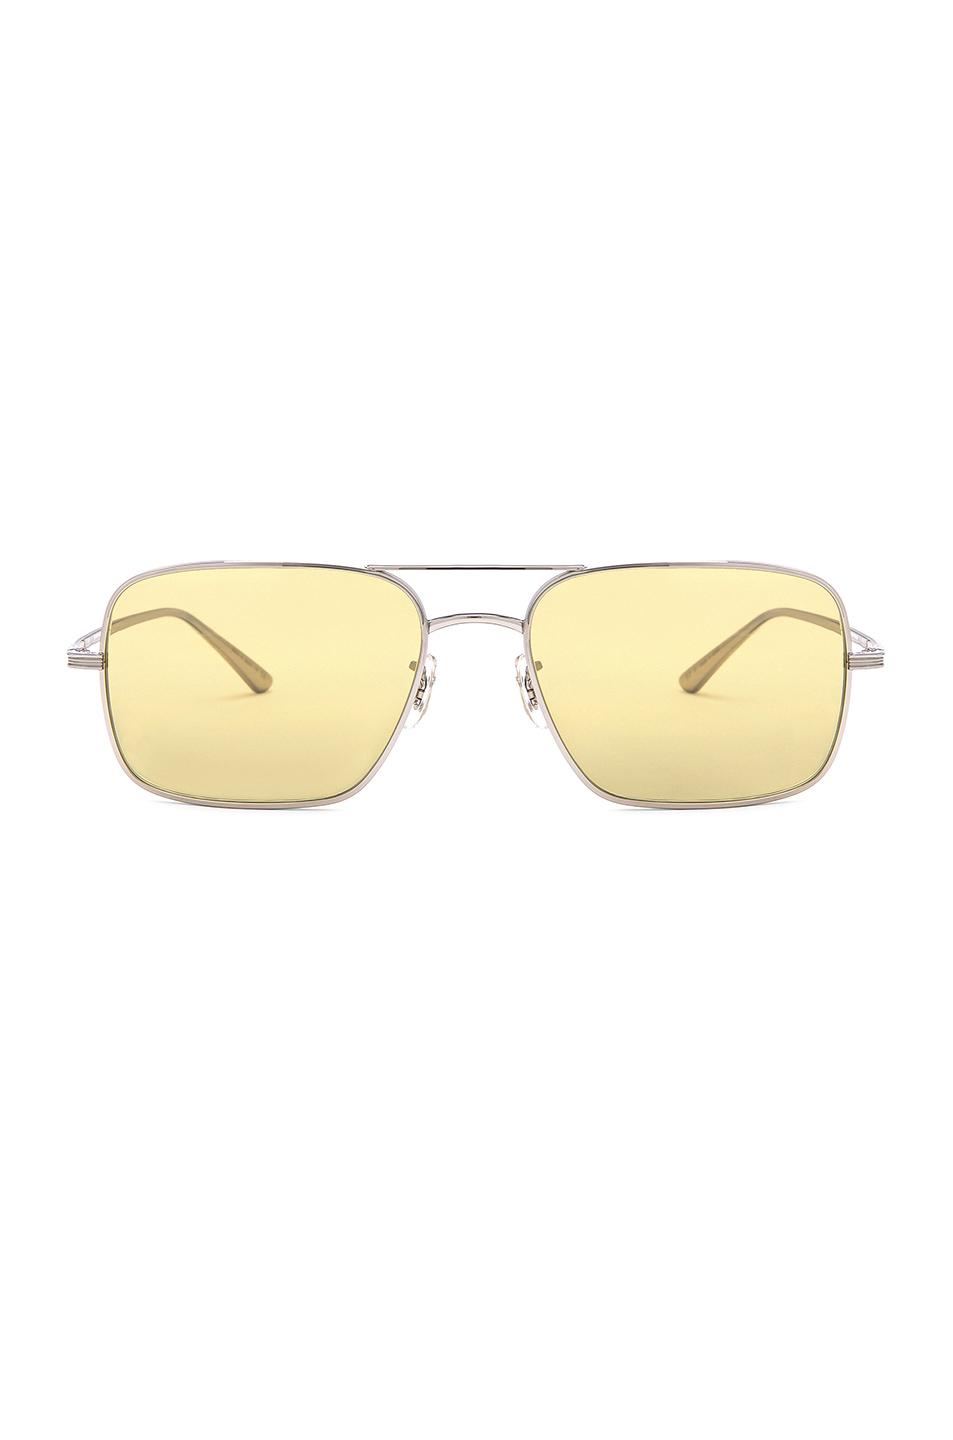 e84222a0eb Buy Original Oliver Peoples X The Row Victory LA Sunglasses at ...